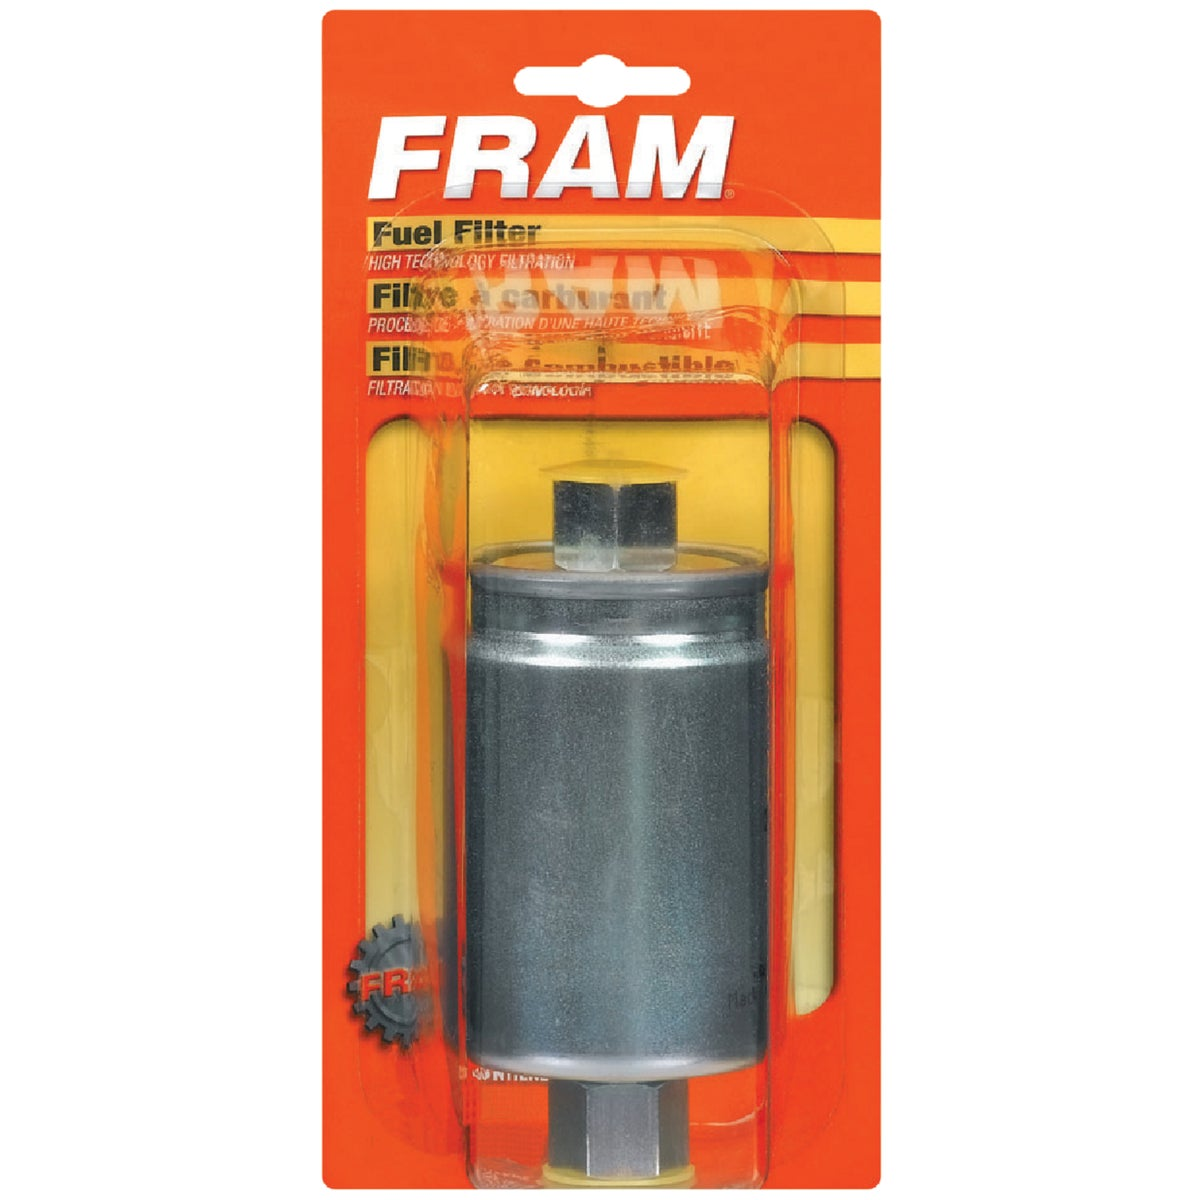 FRAM FUEL FILTER - G2 by Fram Group